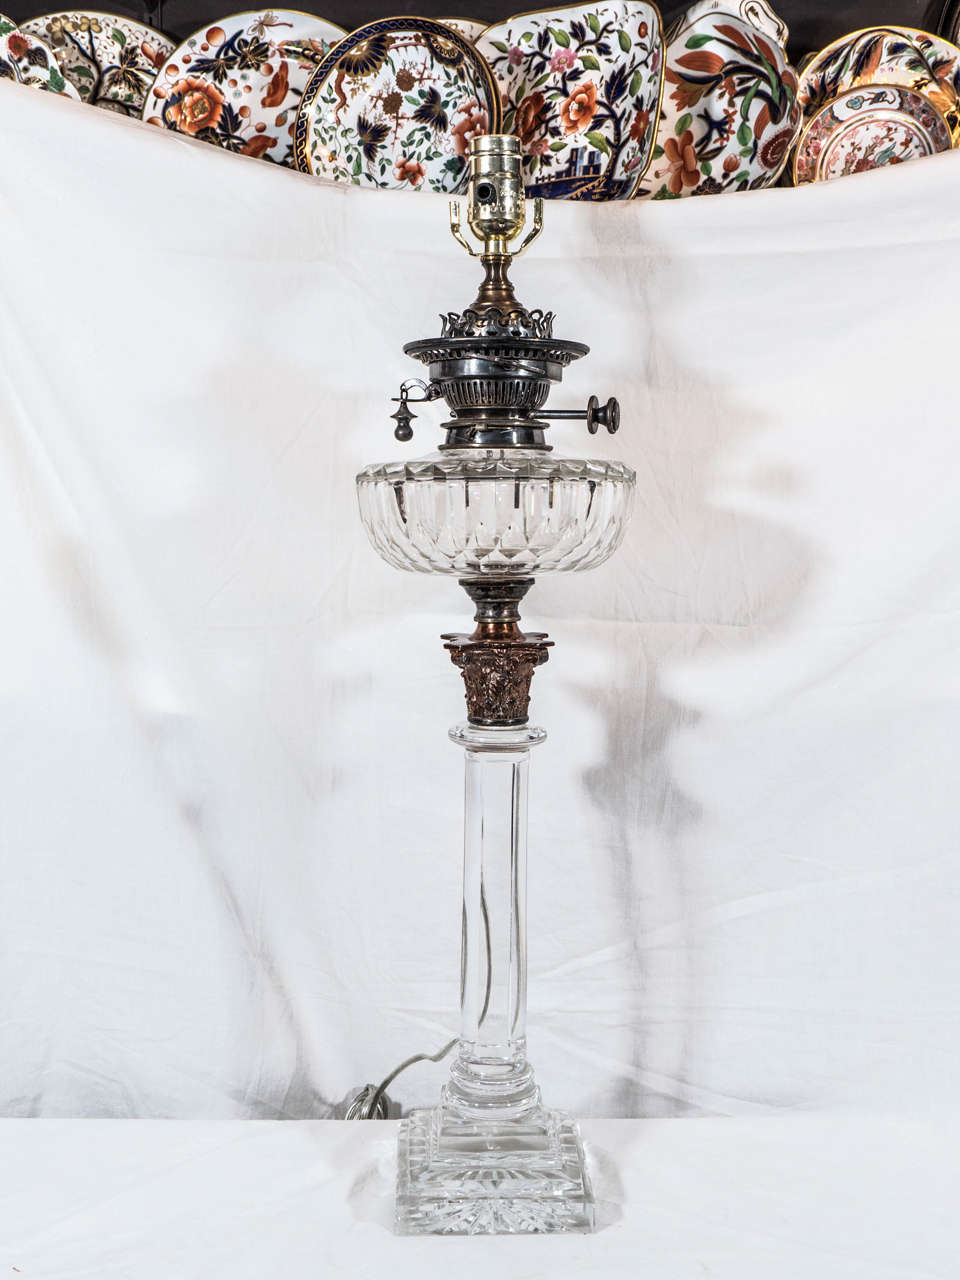 An elegant pair of tall neoclassical banquet lamps inspired by Greek columns. When decorating a room finding attractive lighting is not easy . It is hard to find lighting that is functional as well as  beautiful. These lamps fill both requirements.